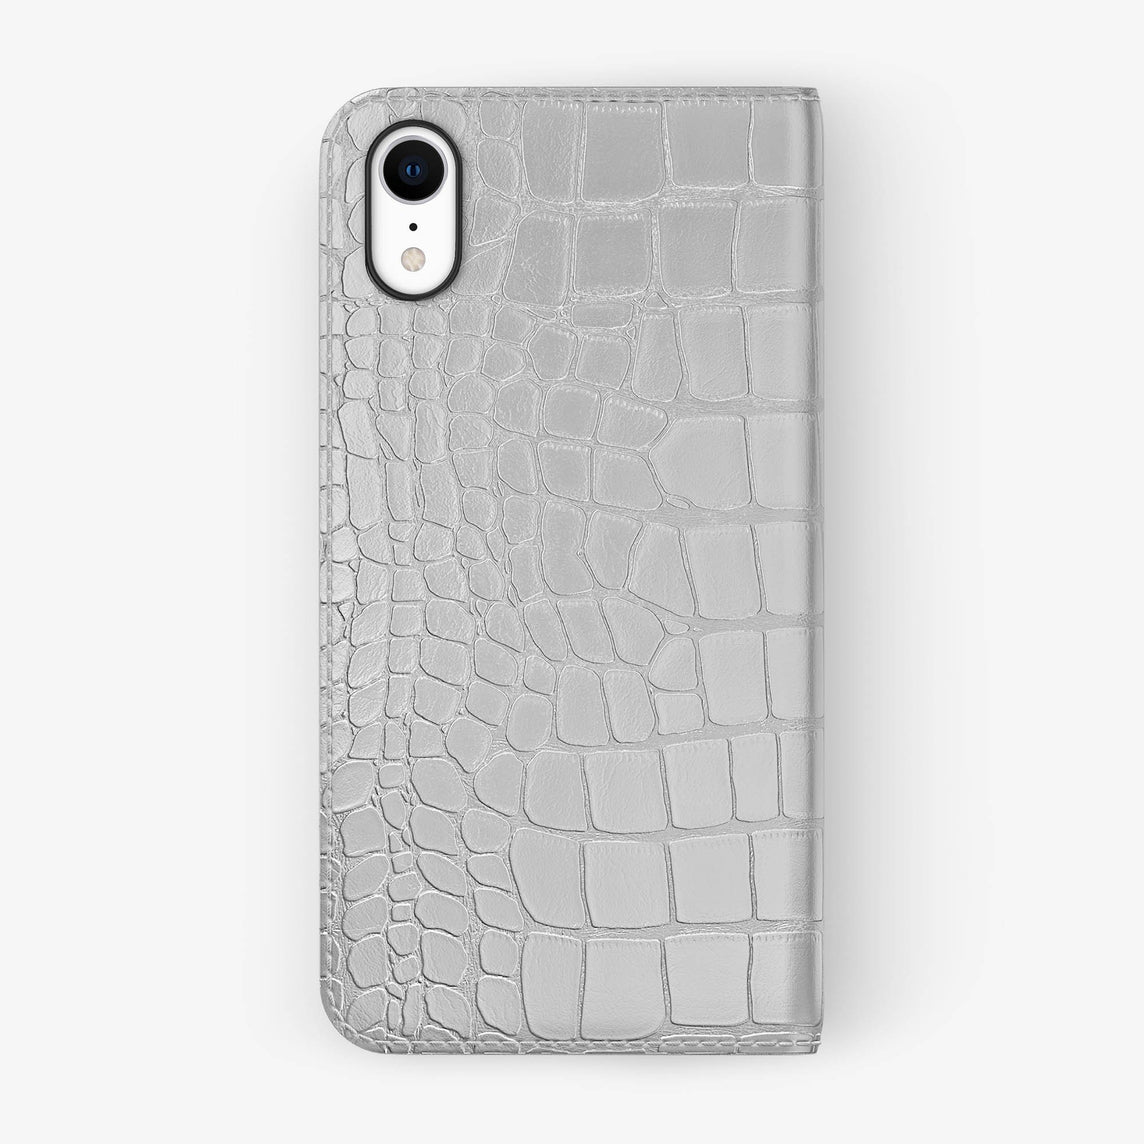 Alligator [iPhone Folio Case] [model:iphone-xr-case] [colour:white] [finishing:black]